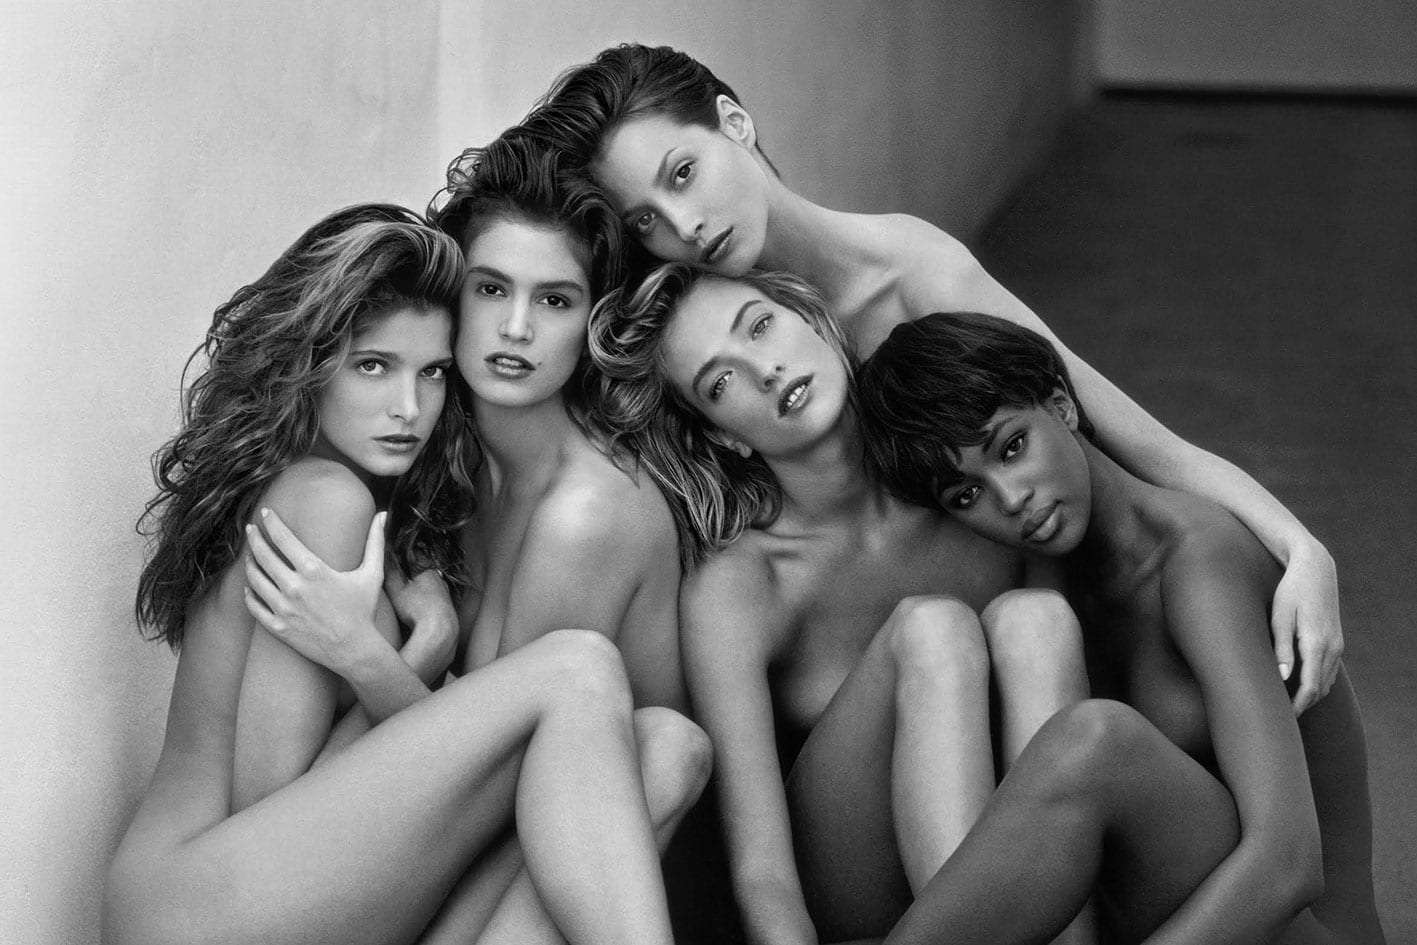 Herb Ritts Exposition Maison Europeenne Photographie Antidote